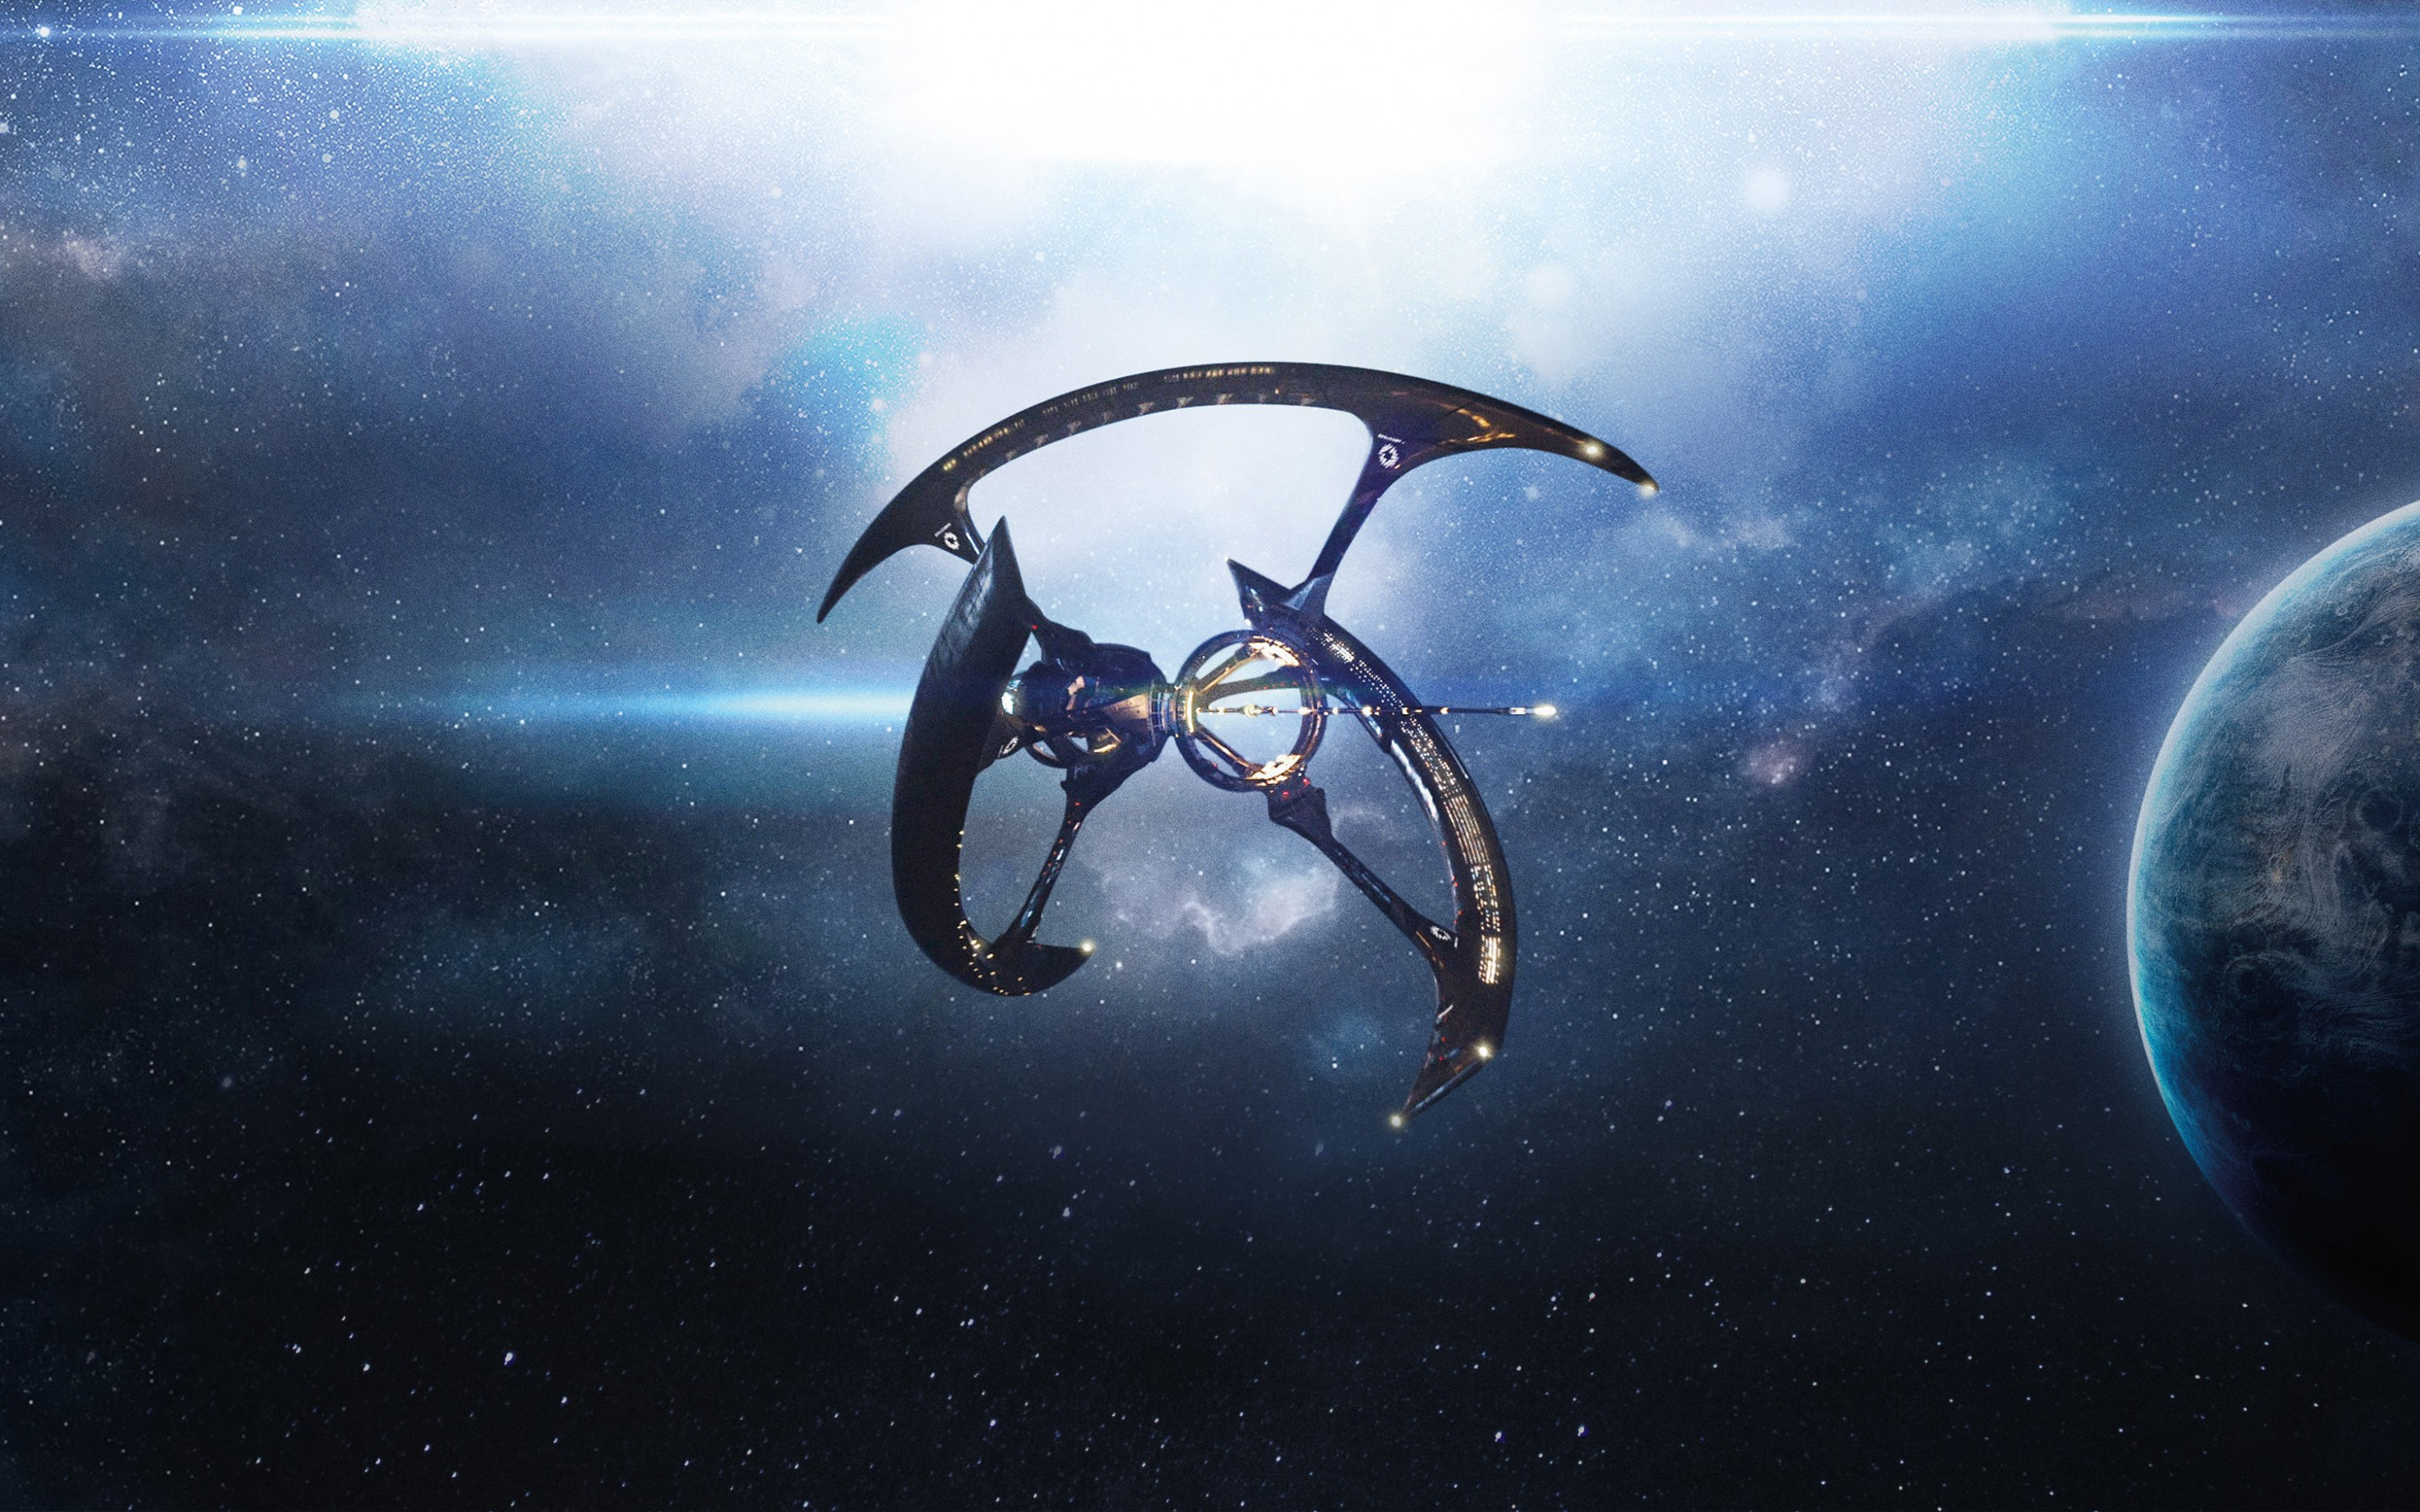 Avatar movie space ships wallpapers 56 wallpapers for Passengers spaceship